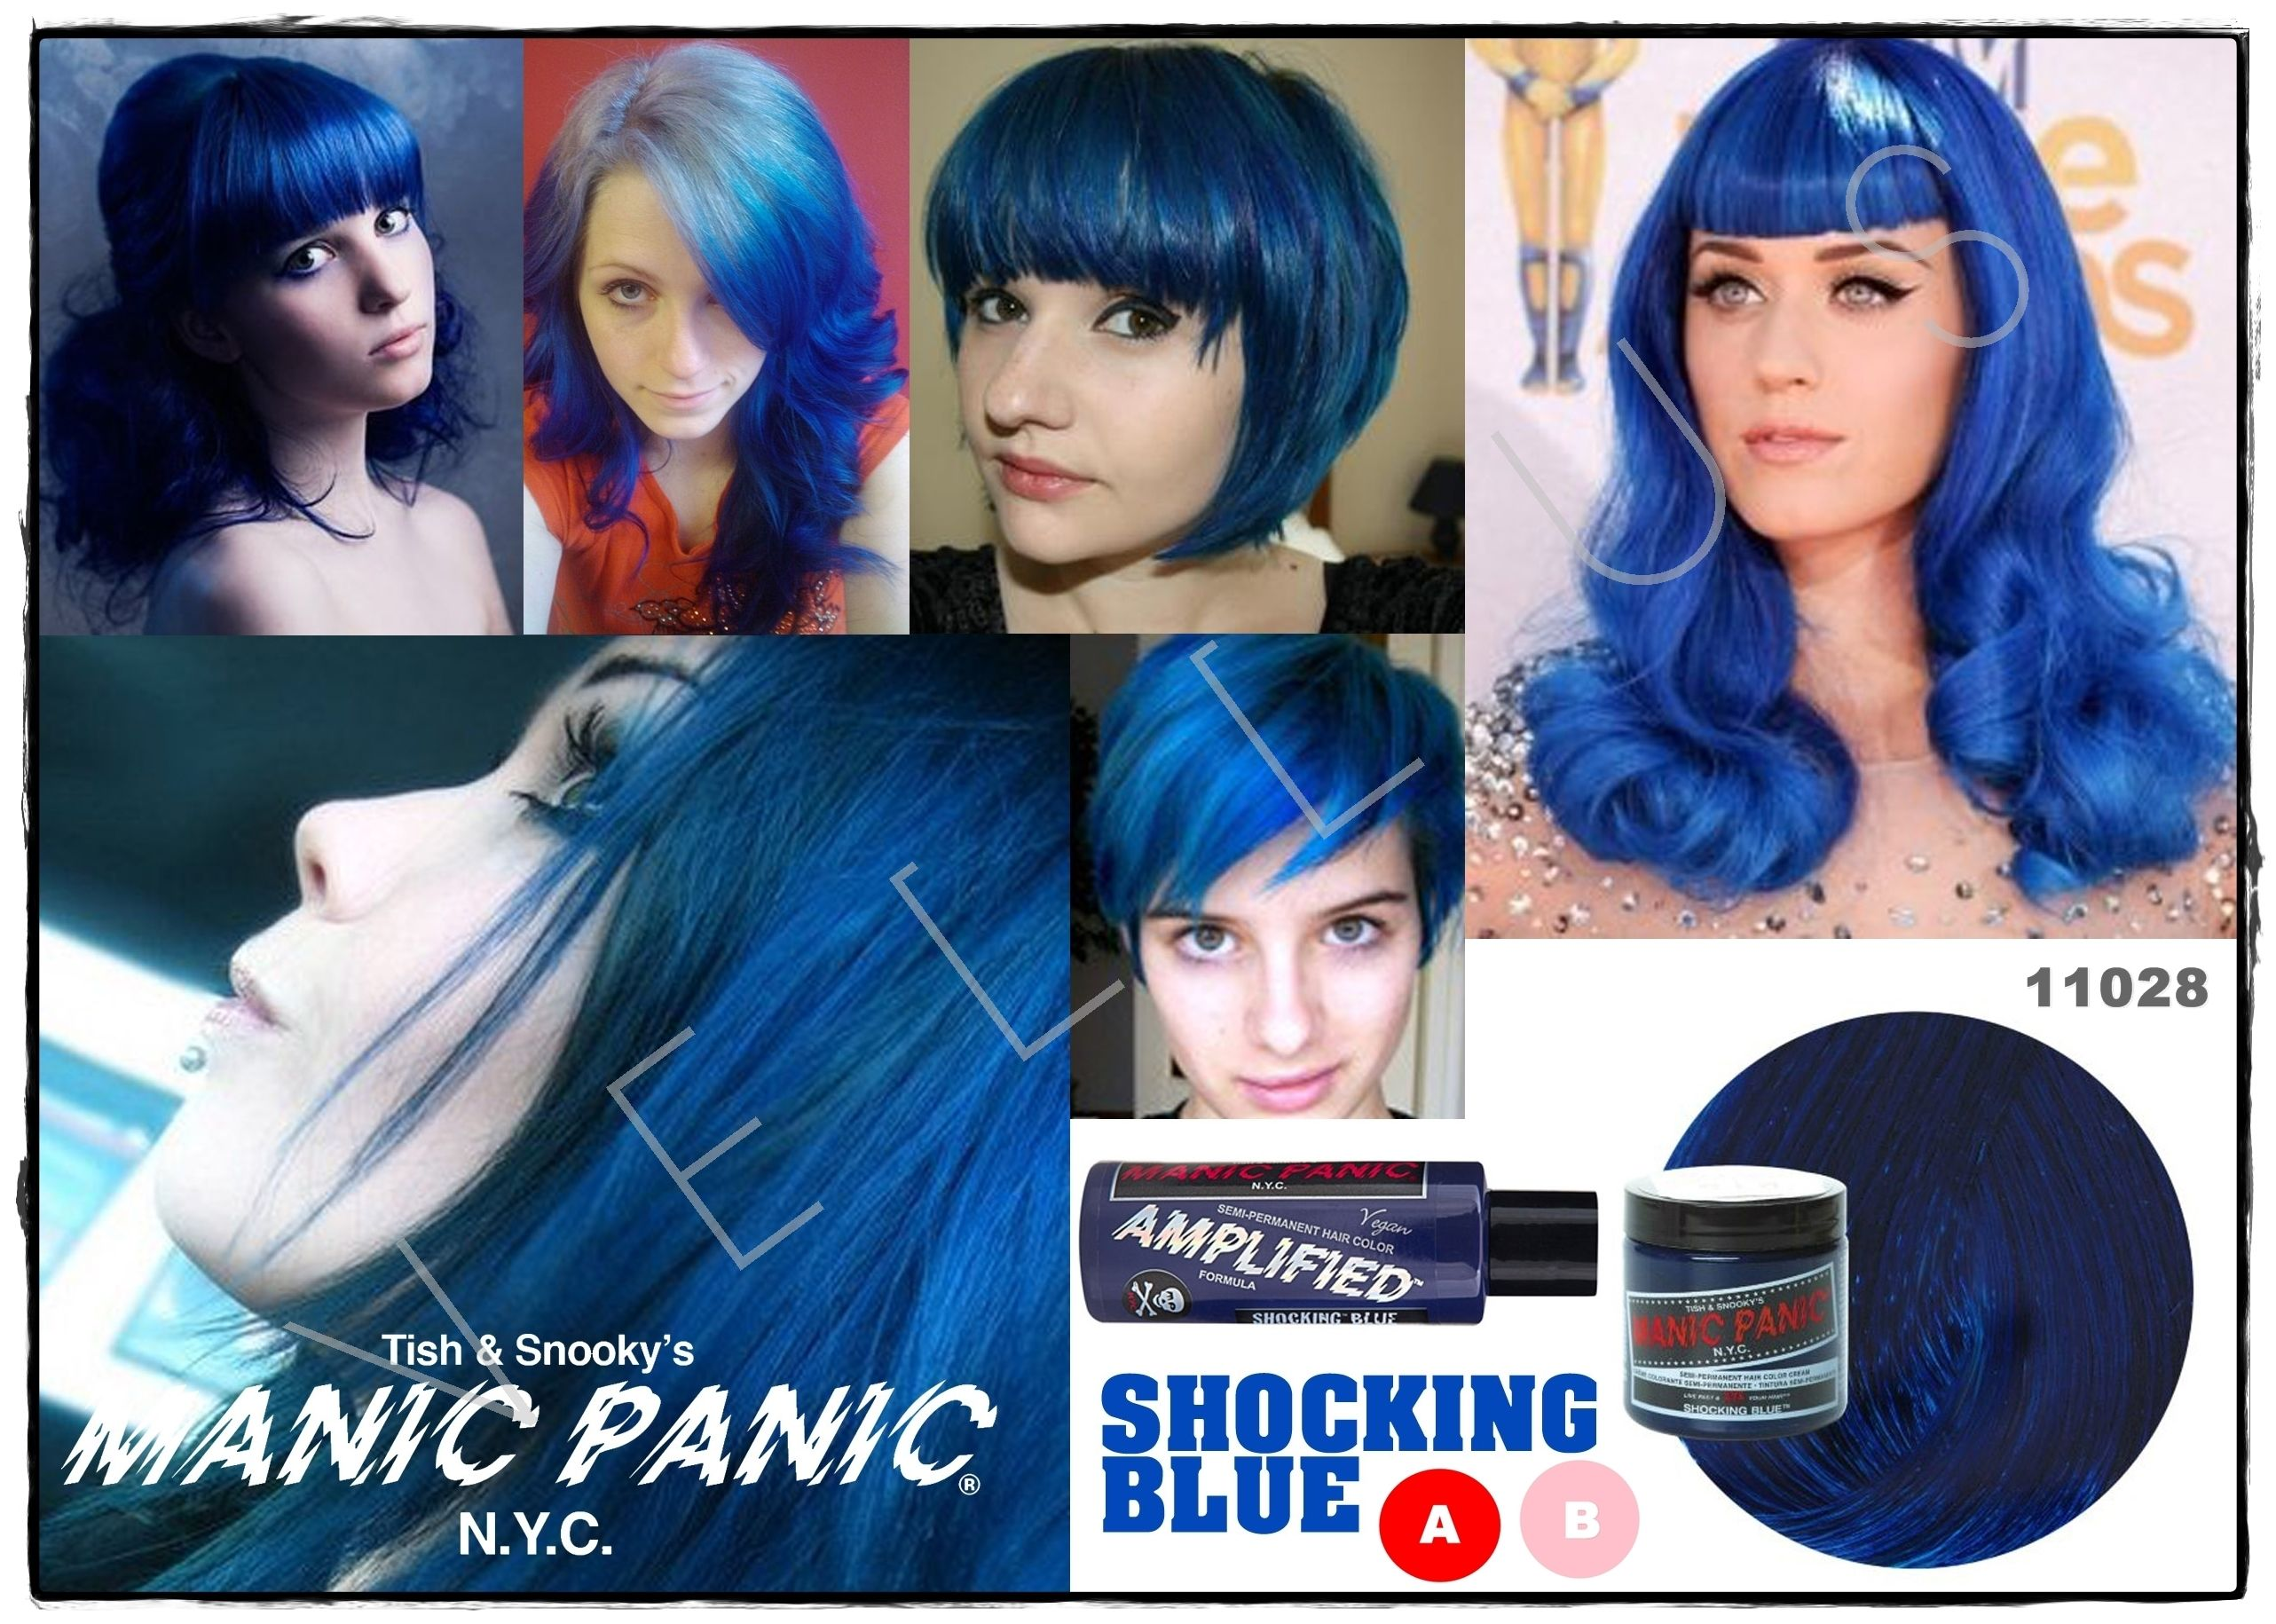 Manic Panic Amplified Shocking Blue Vellus Hair Studio 83a Tanjong